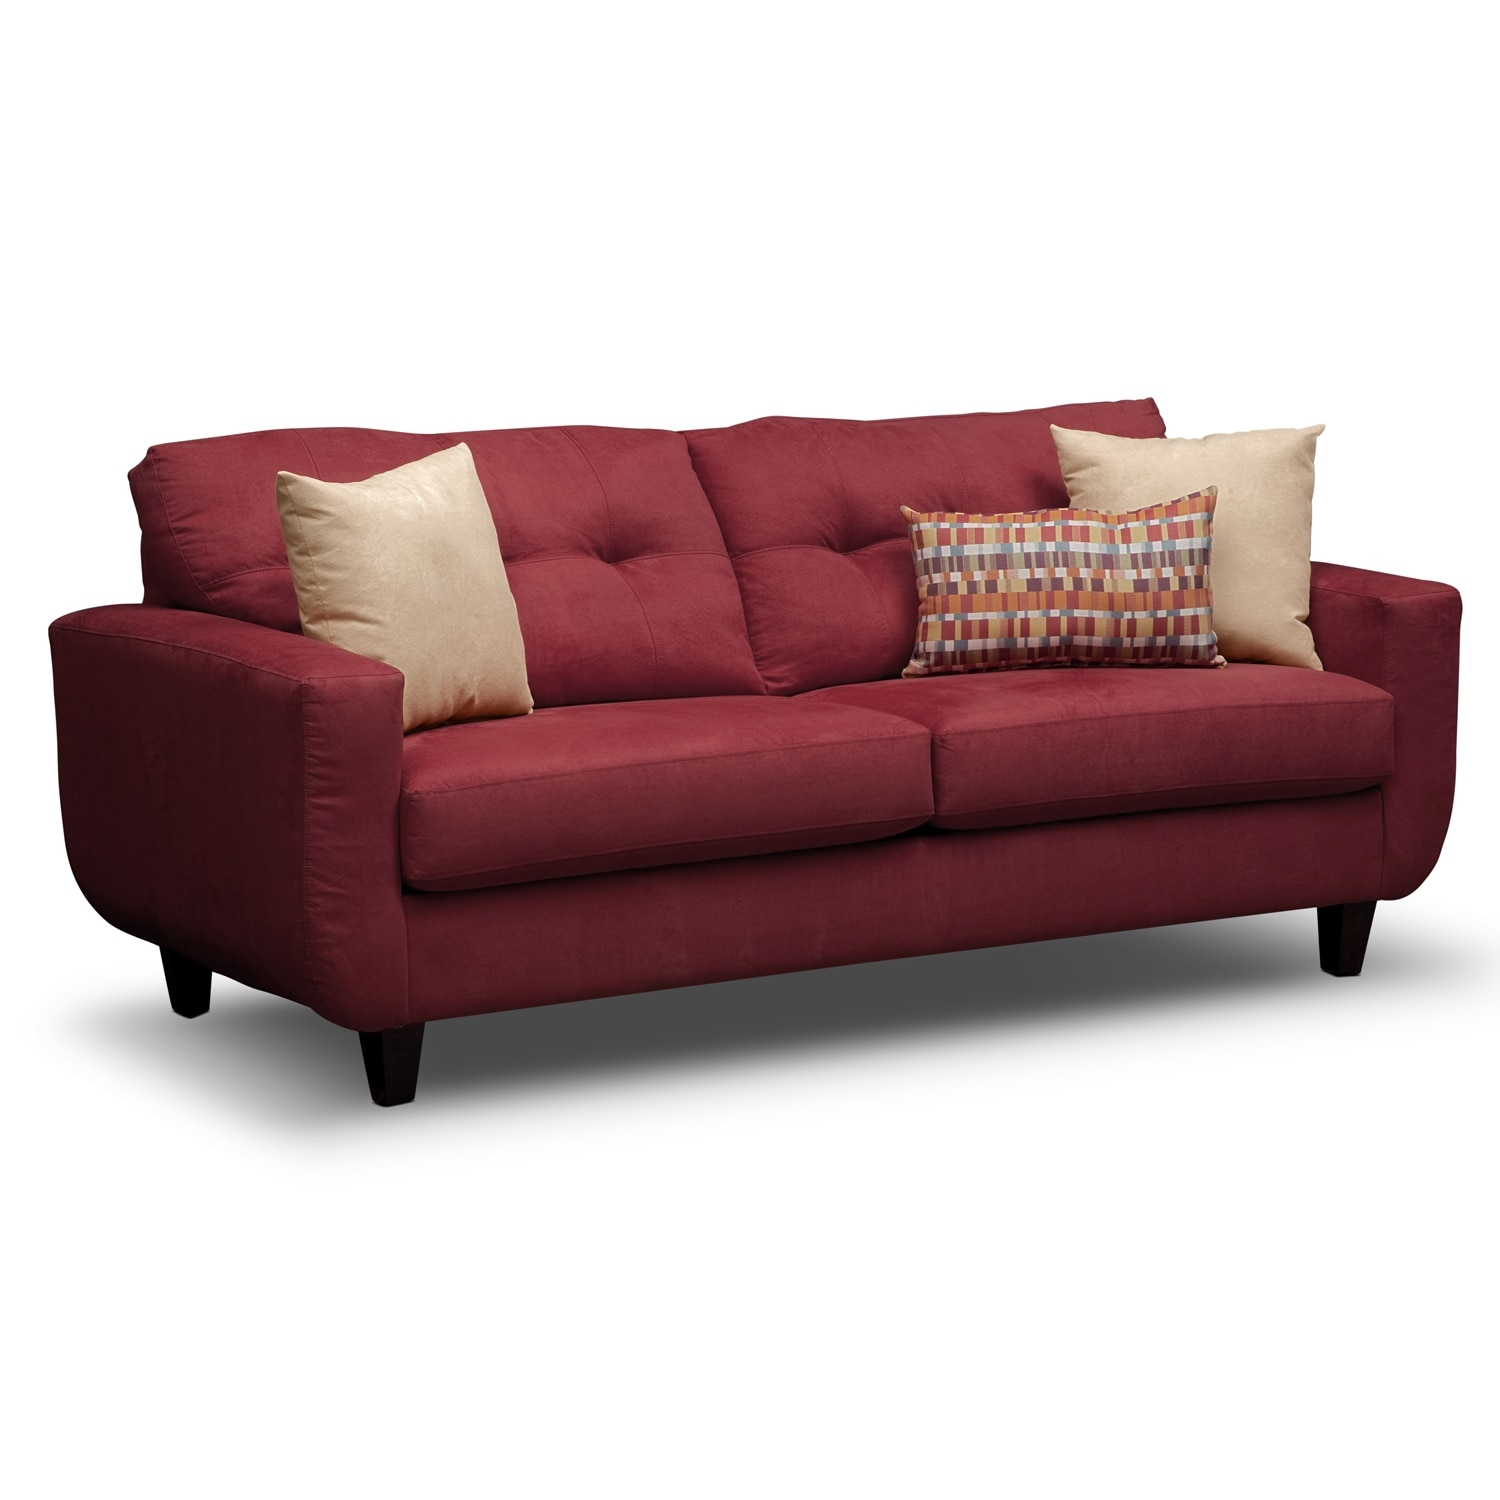 Living Room Furniture - Walker Red Sofa